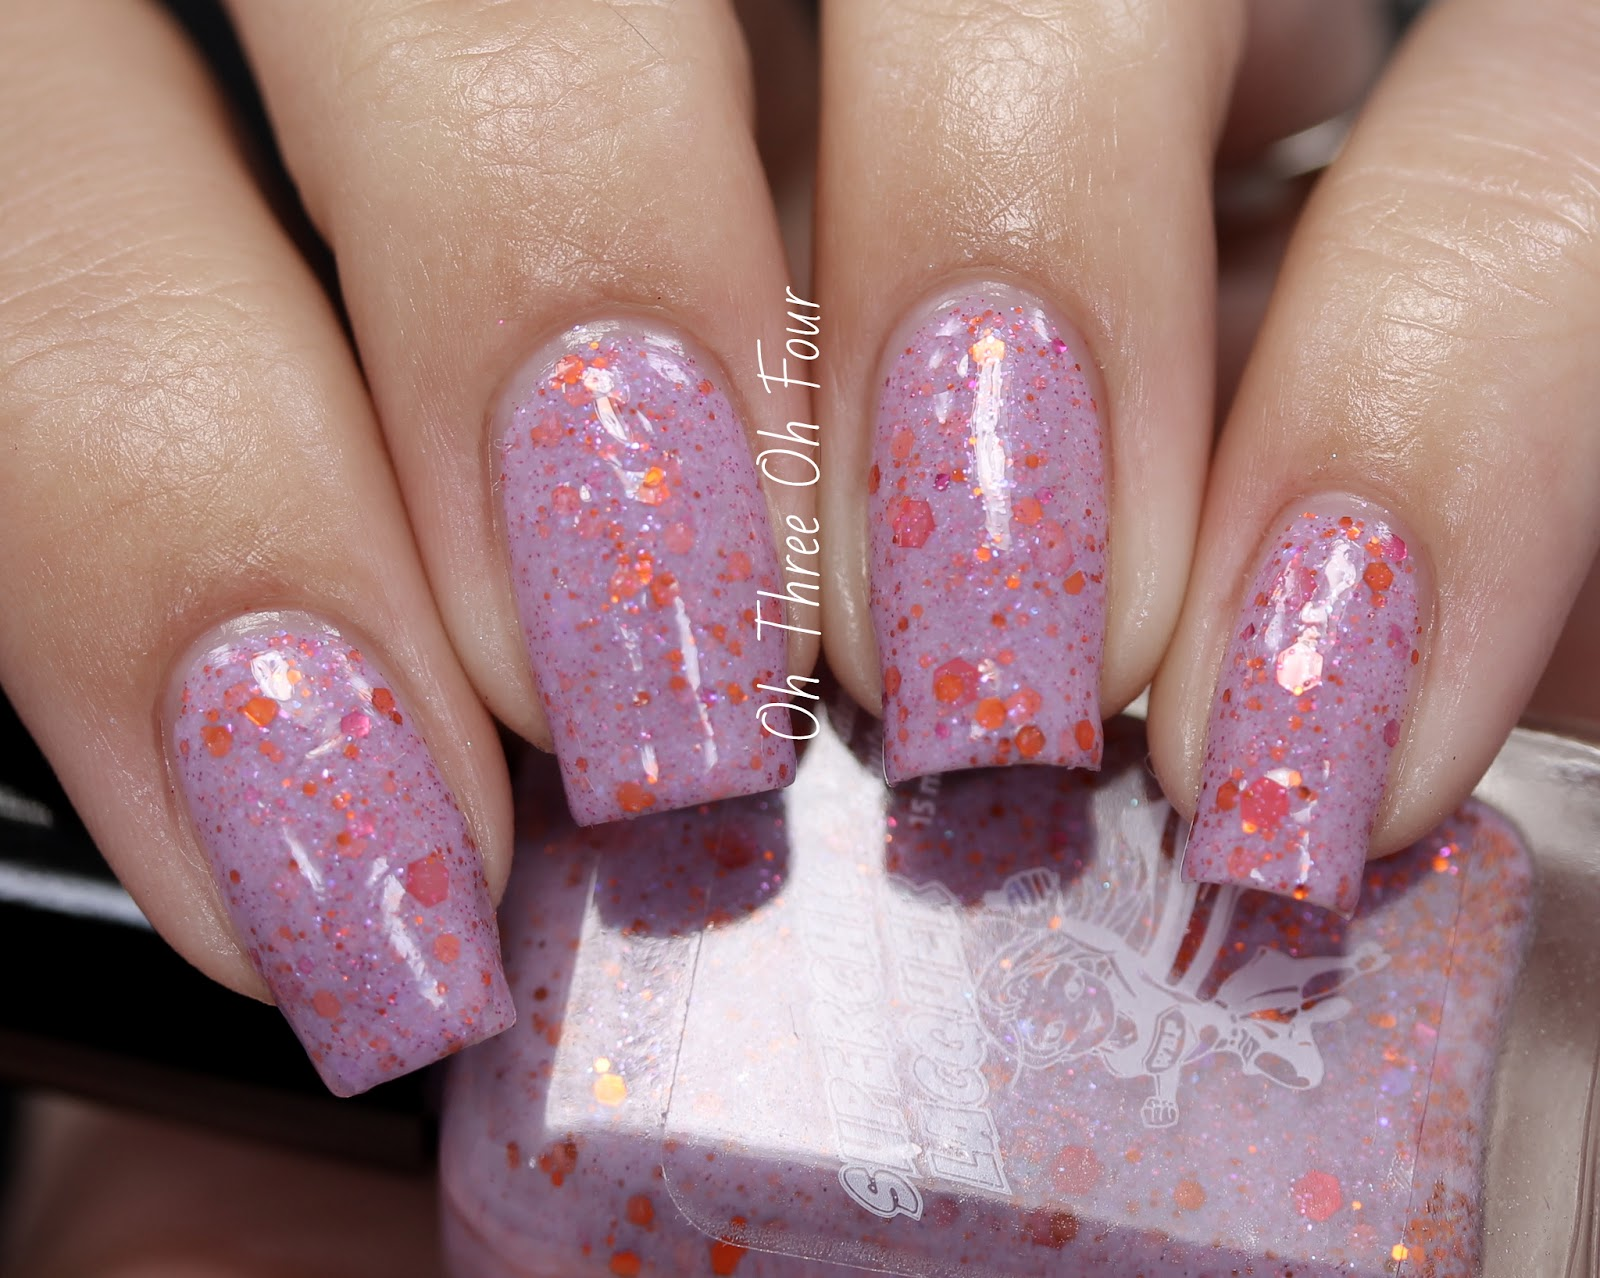 SuperChic Lacquer Thimble Kisses Swatch